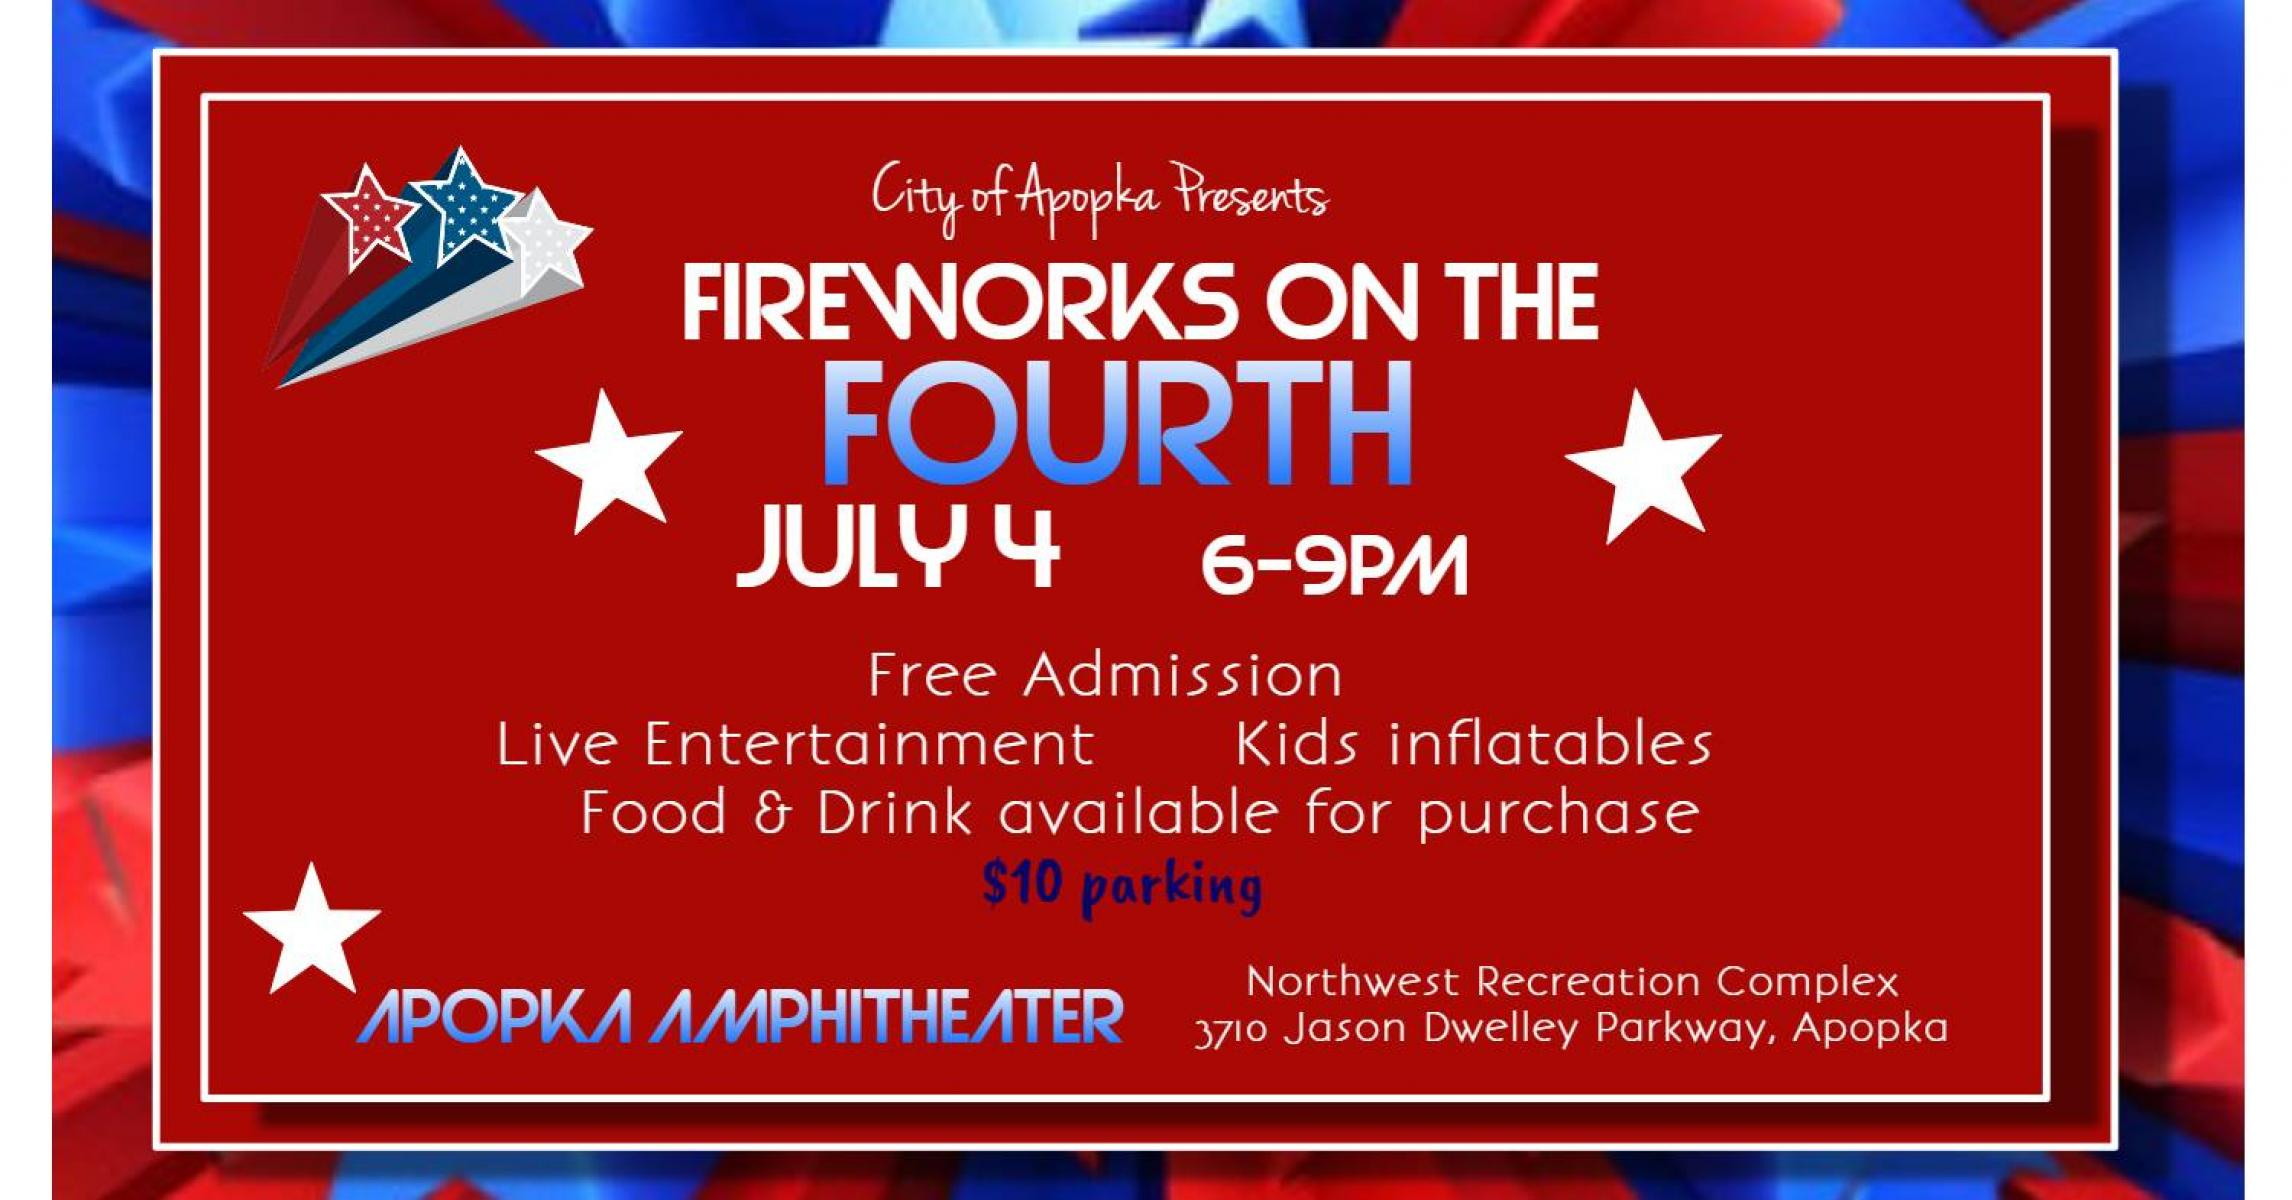 Fireworks on the Fourth! July 4th Celebration in Apopka, Orlando FL ...